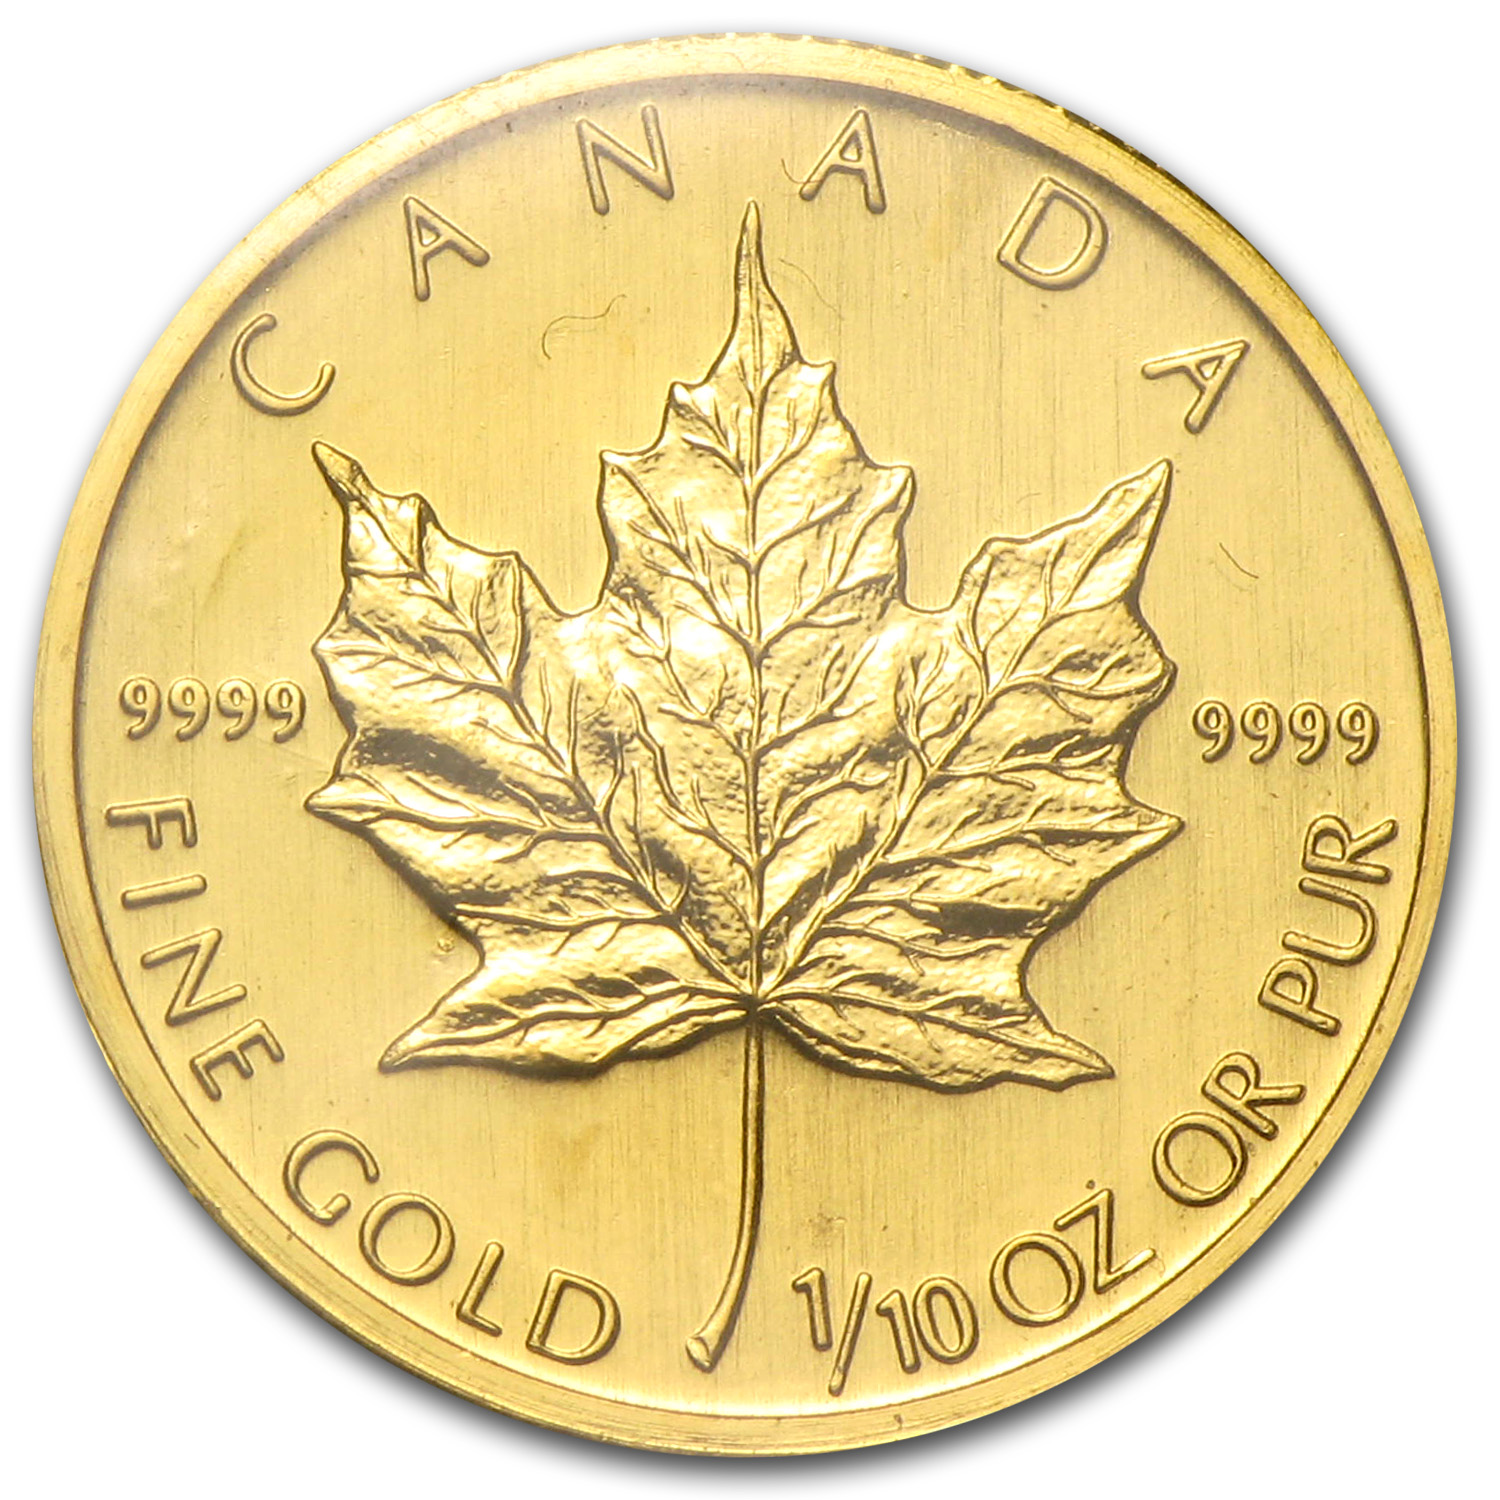 2007 Canada 1/10 oz Gold Maple Leaf BU